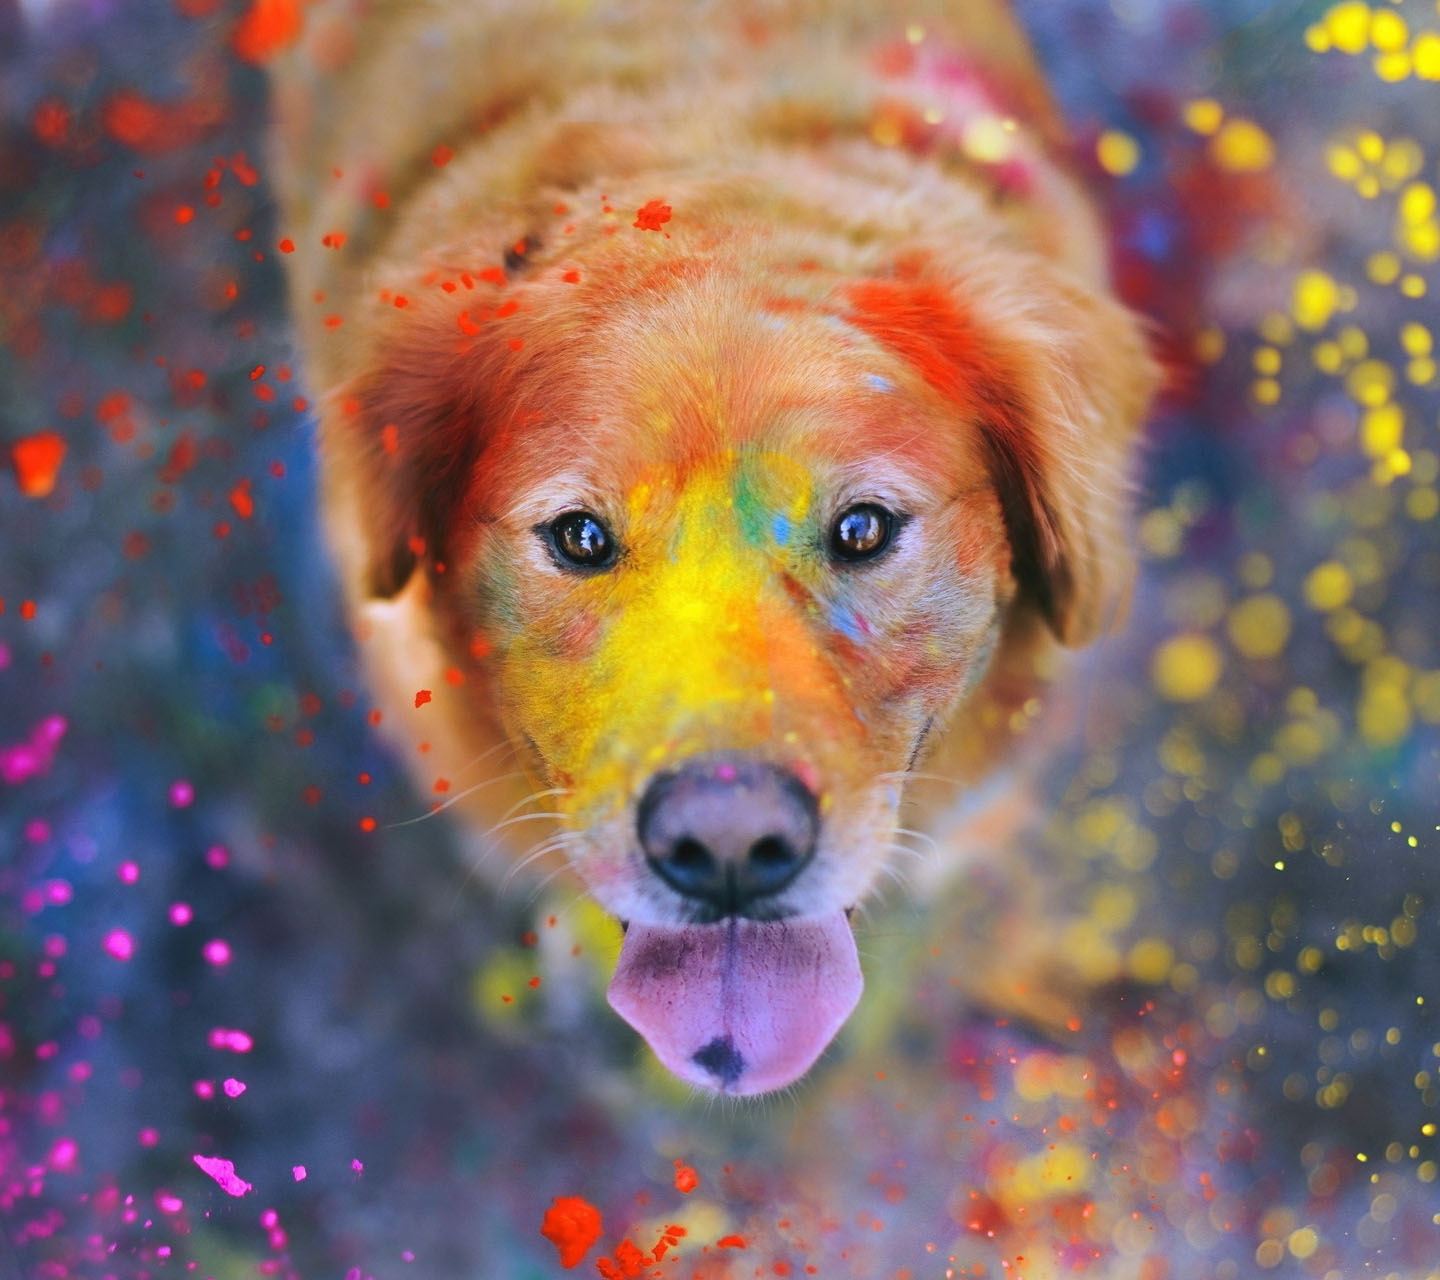 galaxy s3 wallpaper colorful dog covers heat